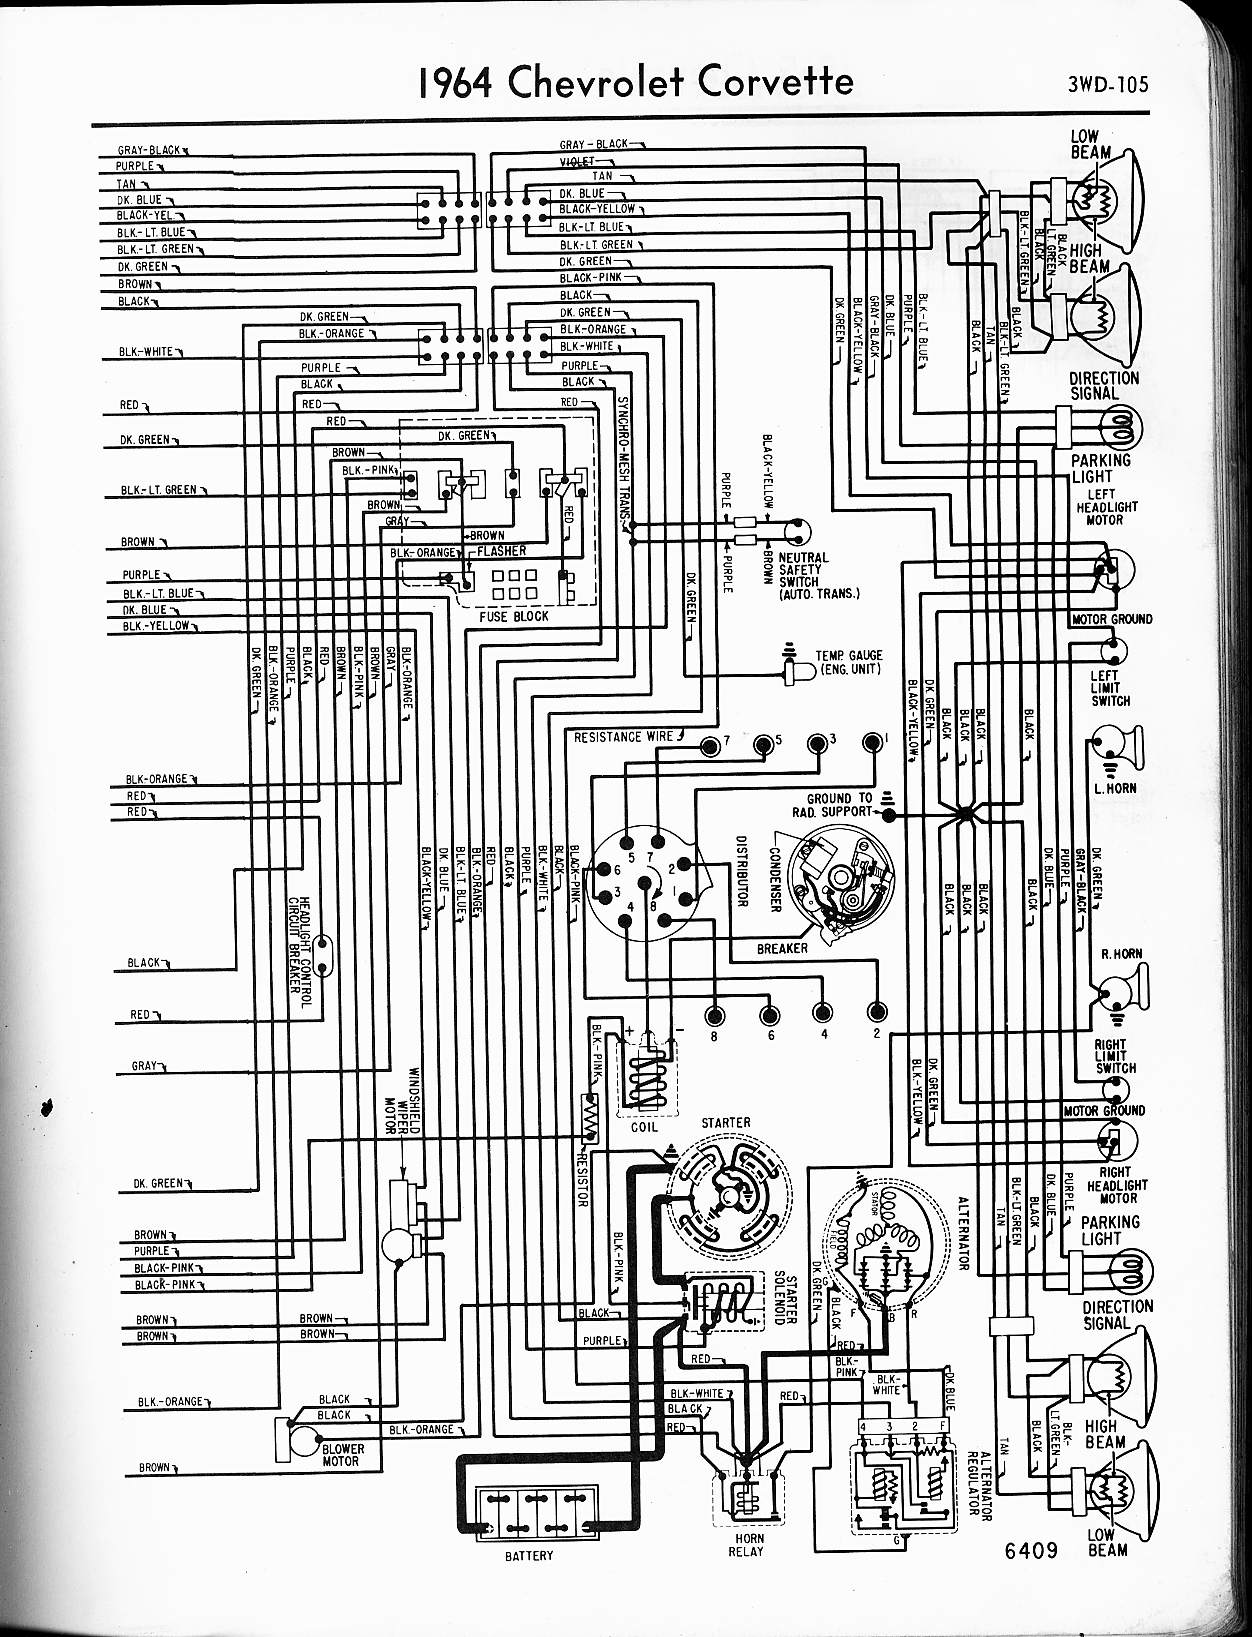 65 Chevy Wiring Diagram - Wiring Diagram Schematic Name on 64 chevelle engine compartment, 64 chevelle trunk latch, 64 chevelle hood latch, 66 mustang wiring harness, 64 chevelle trunk lid, 64 chevelle ignition wiring, 64 chevelle tail lights, 64 chevelle motor mounts, 69 camaro wiring harness, 67 mustang wiring harness, 64 chevelle hood scoop, 64 chevelle headlights,